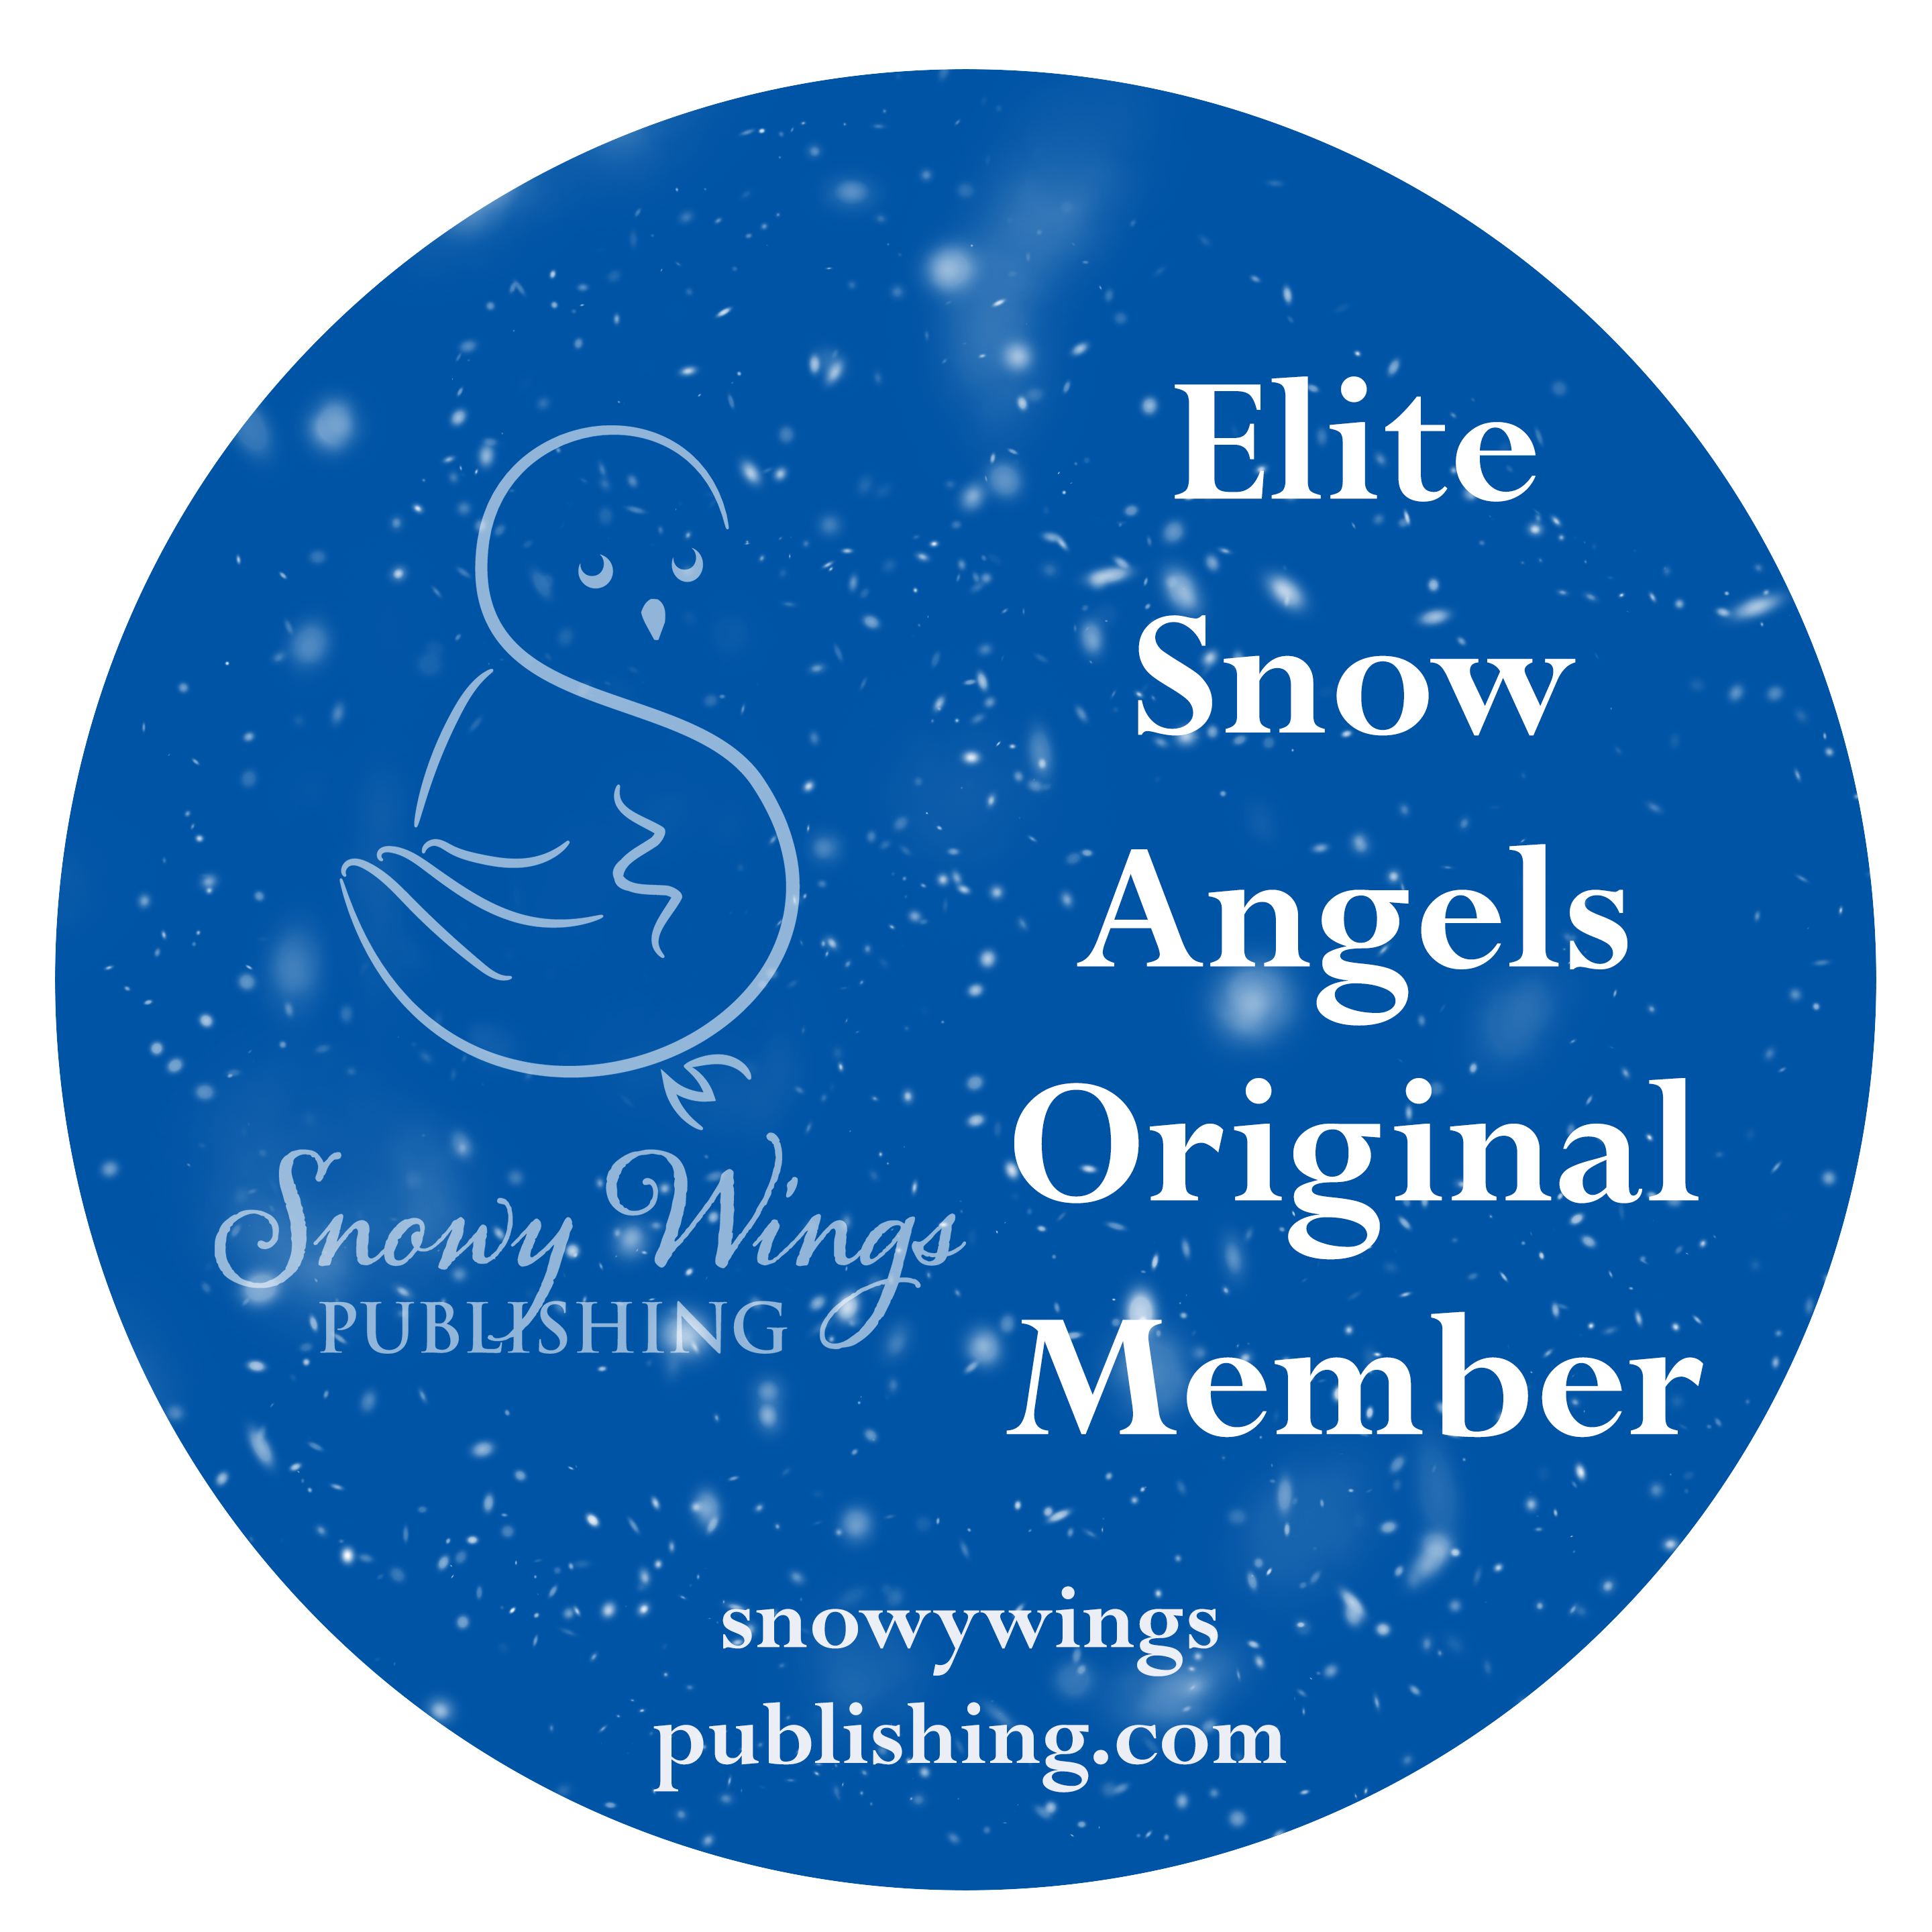 Snowy Wings Publishing Elite Snow Angels Original Member